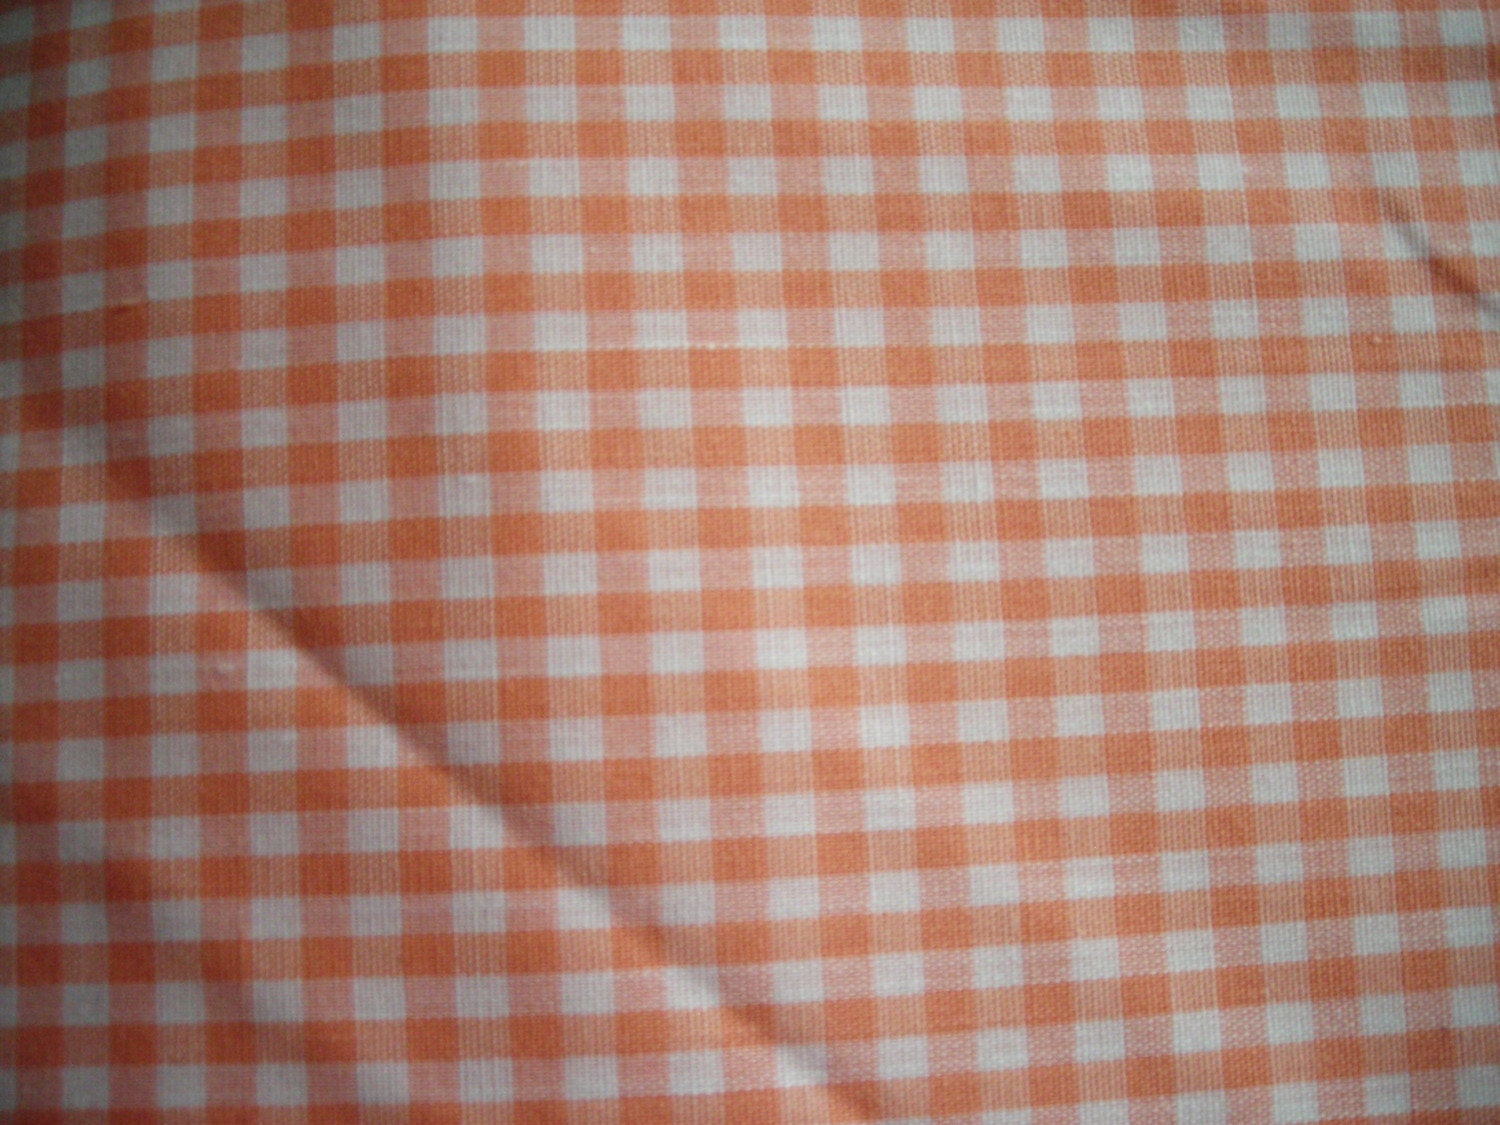 Orange gingham fabric for Gingham fabric